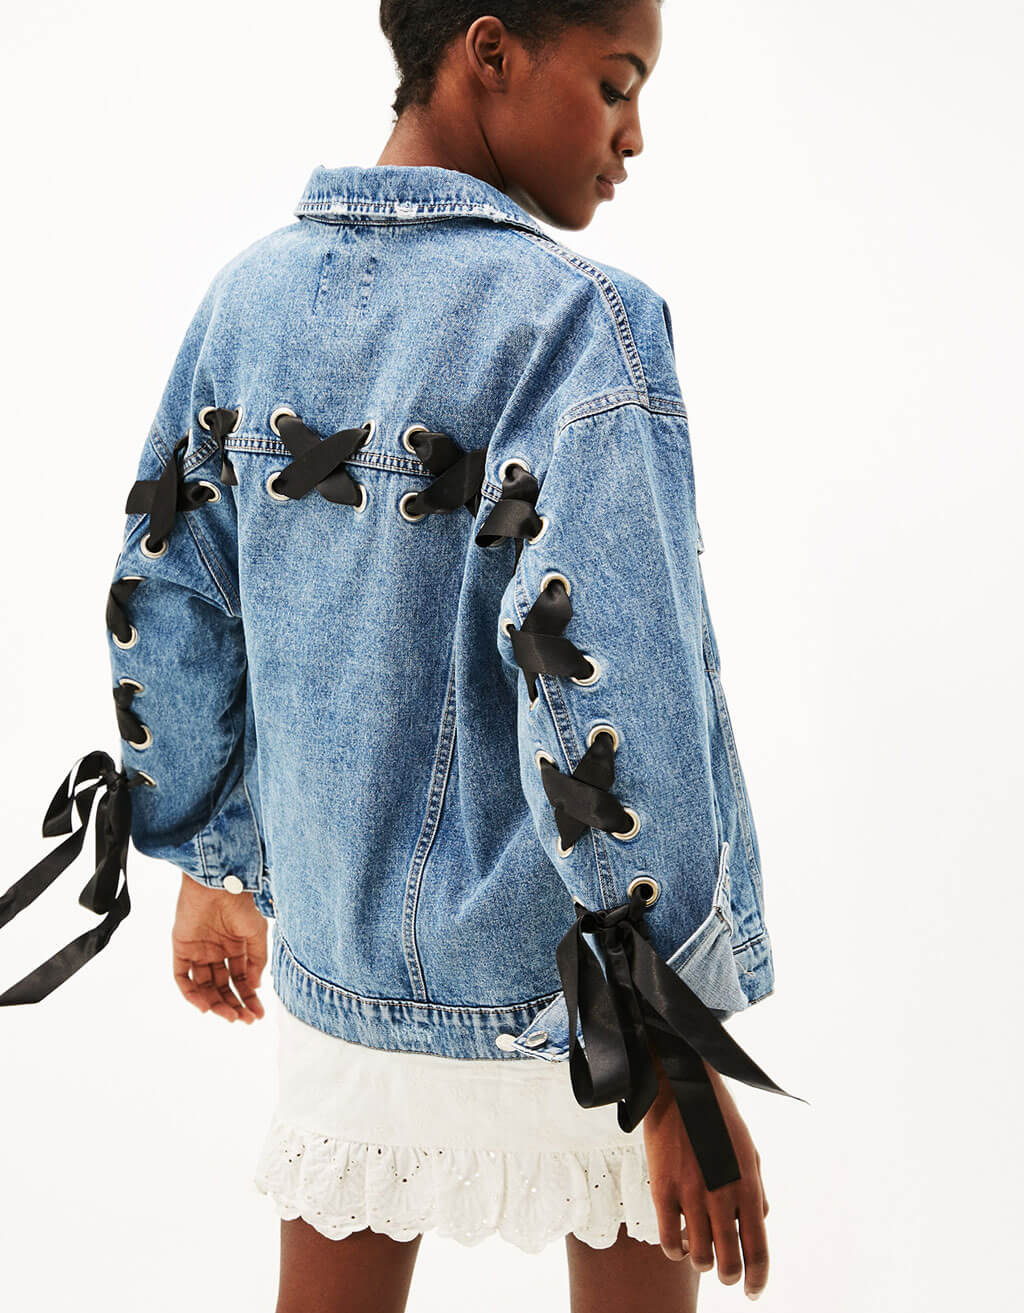 Denim jacket by Bershka